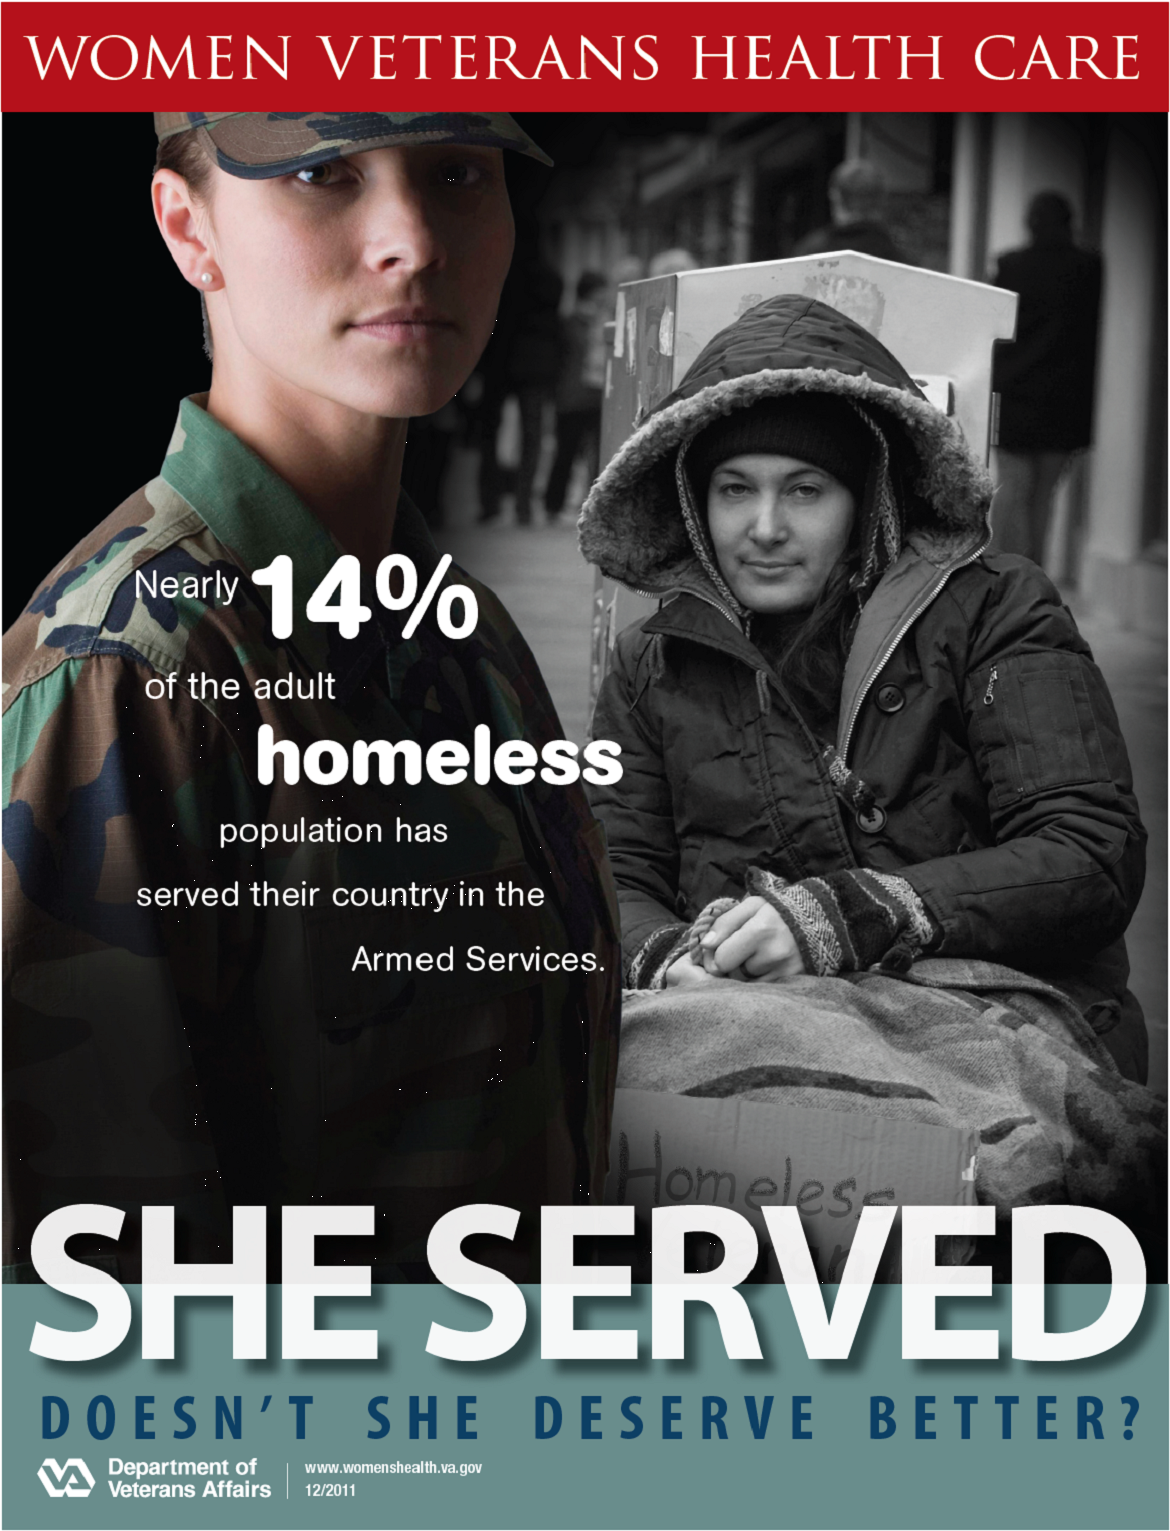 homeless military veterans essay Emotional appeal - the va estimates that in 1989 nearly 200,000 veterans were homeless on any given night and nearly 400,000 experience homelessness over the course of a year microsoft word - persuasive speech outlinedoc author.